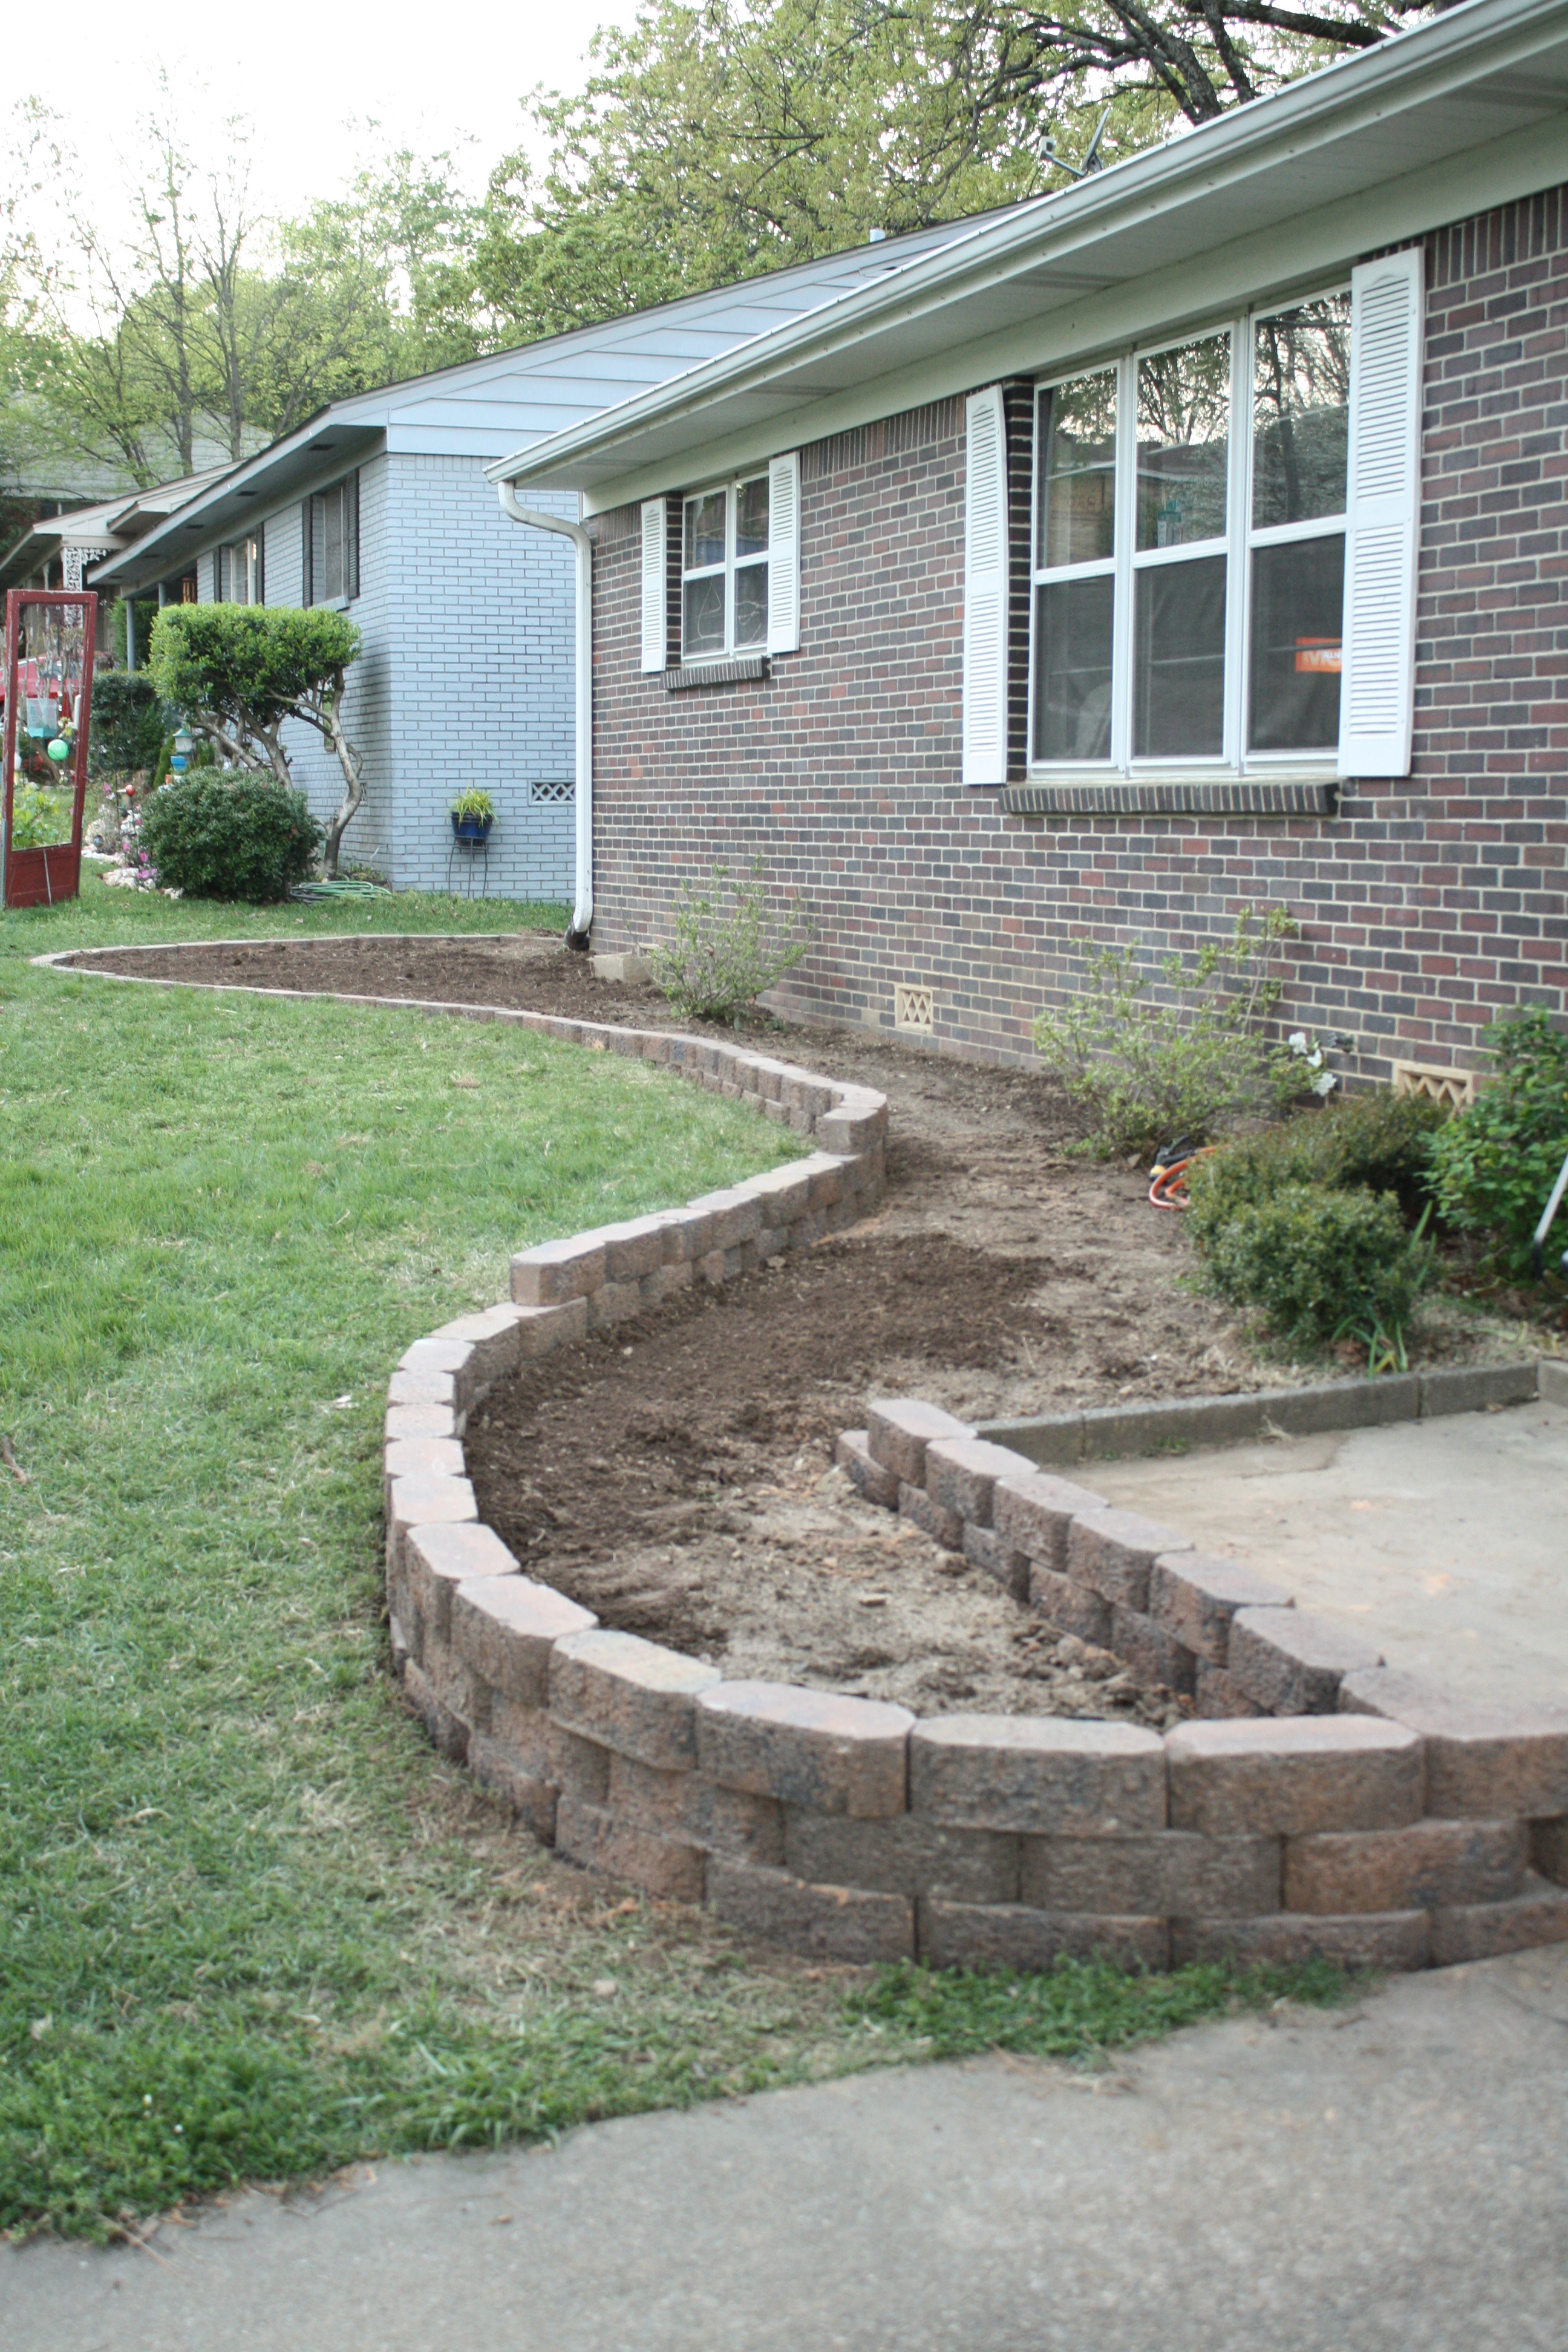 Manscaping phase 1 a guest post from aaron rosemary for Raised flower bed ideas front of house